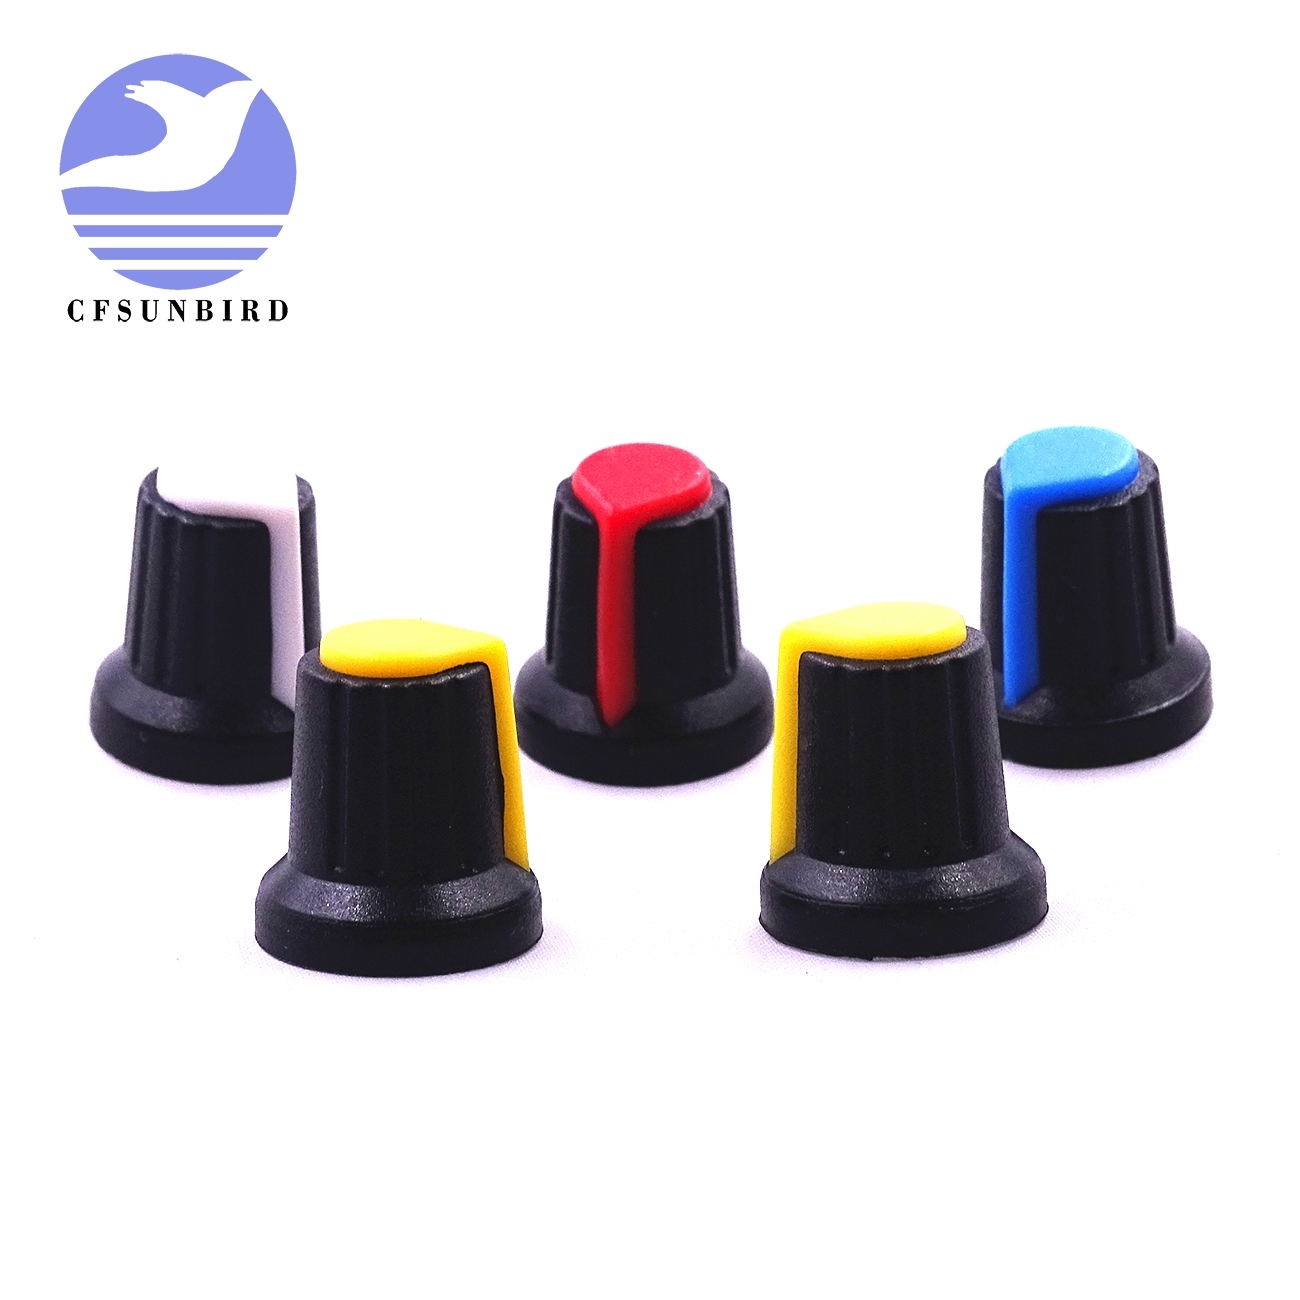 10Pcs High Quality Plastic Potentiometers Knobs Knob For Single Double Potentiometers